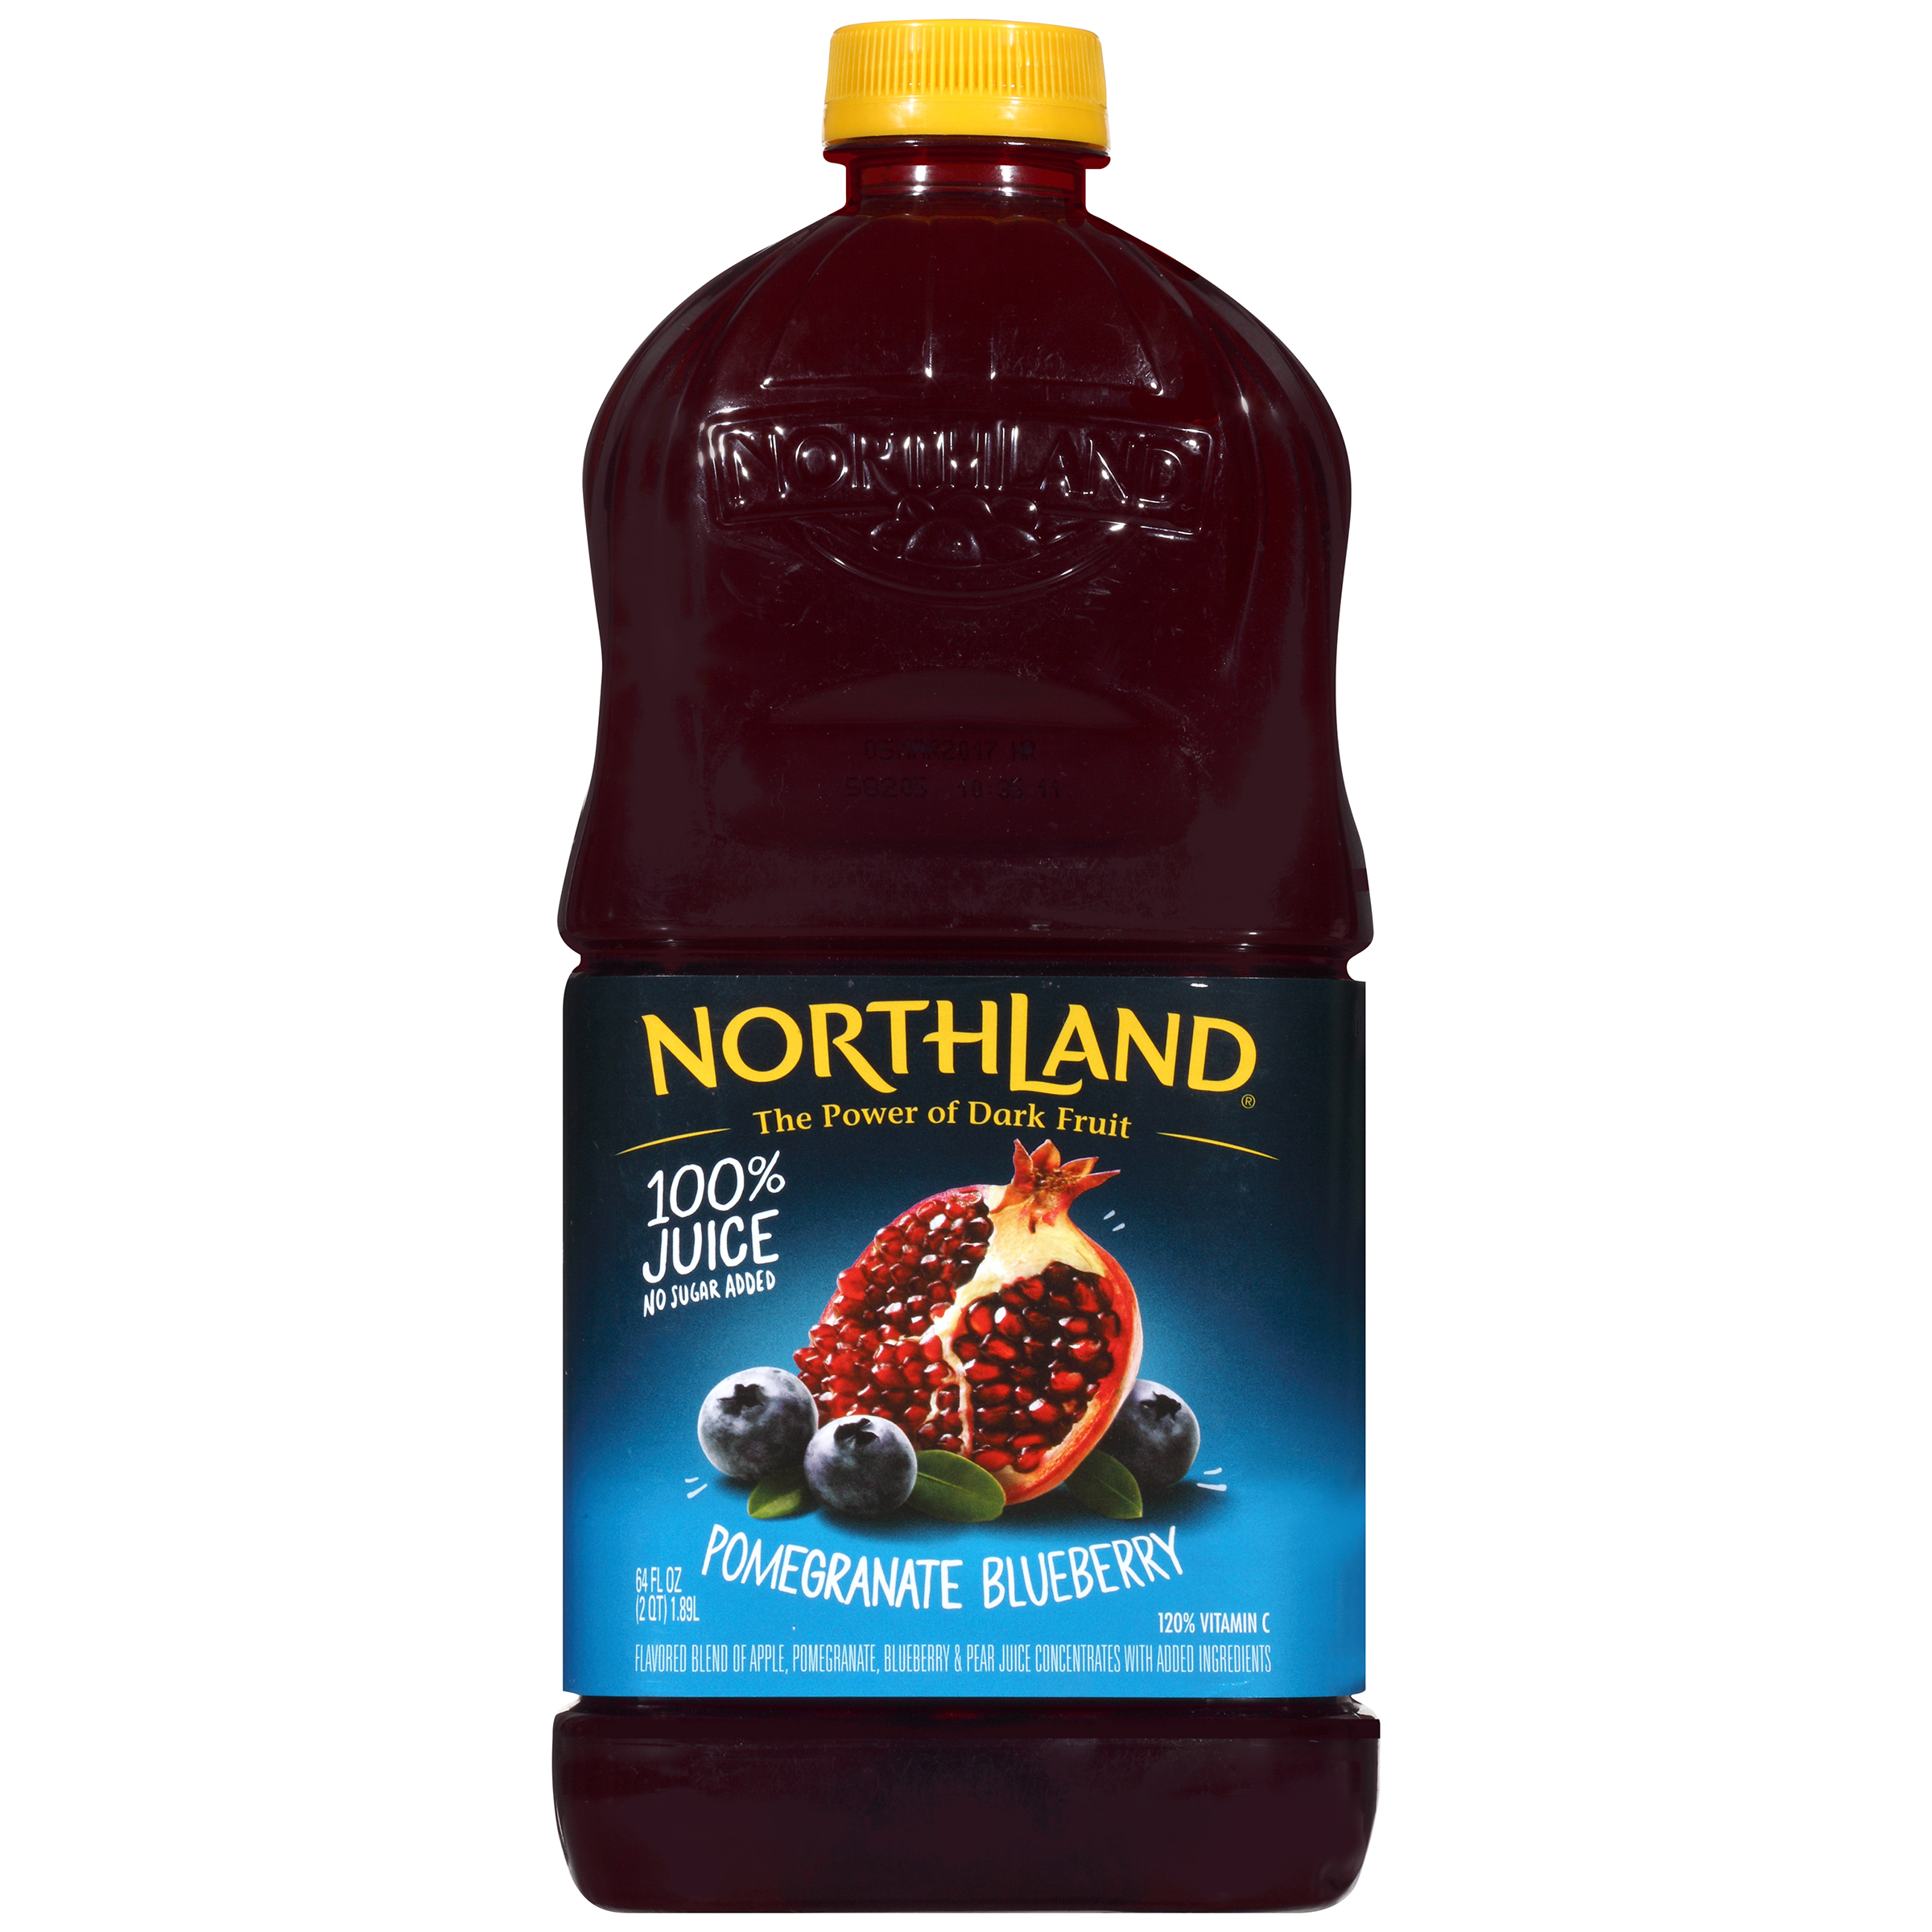 Northland 100% Pomegranate Blueberry Juice, 64 Fl. Oz.